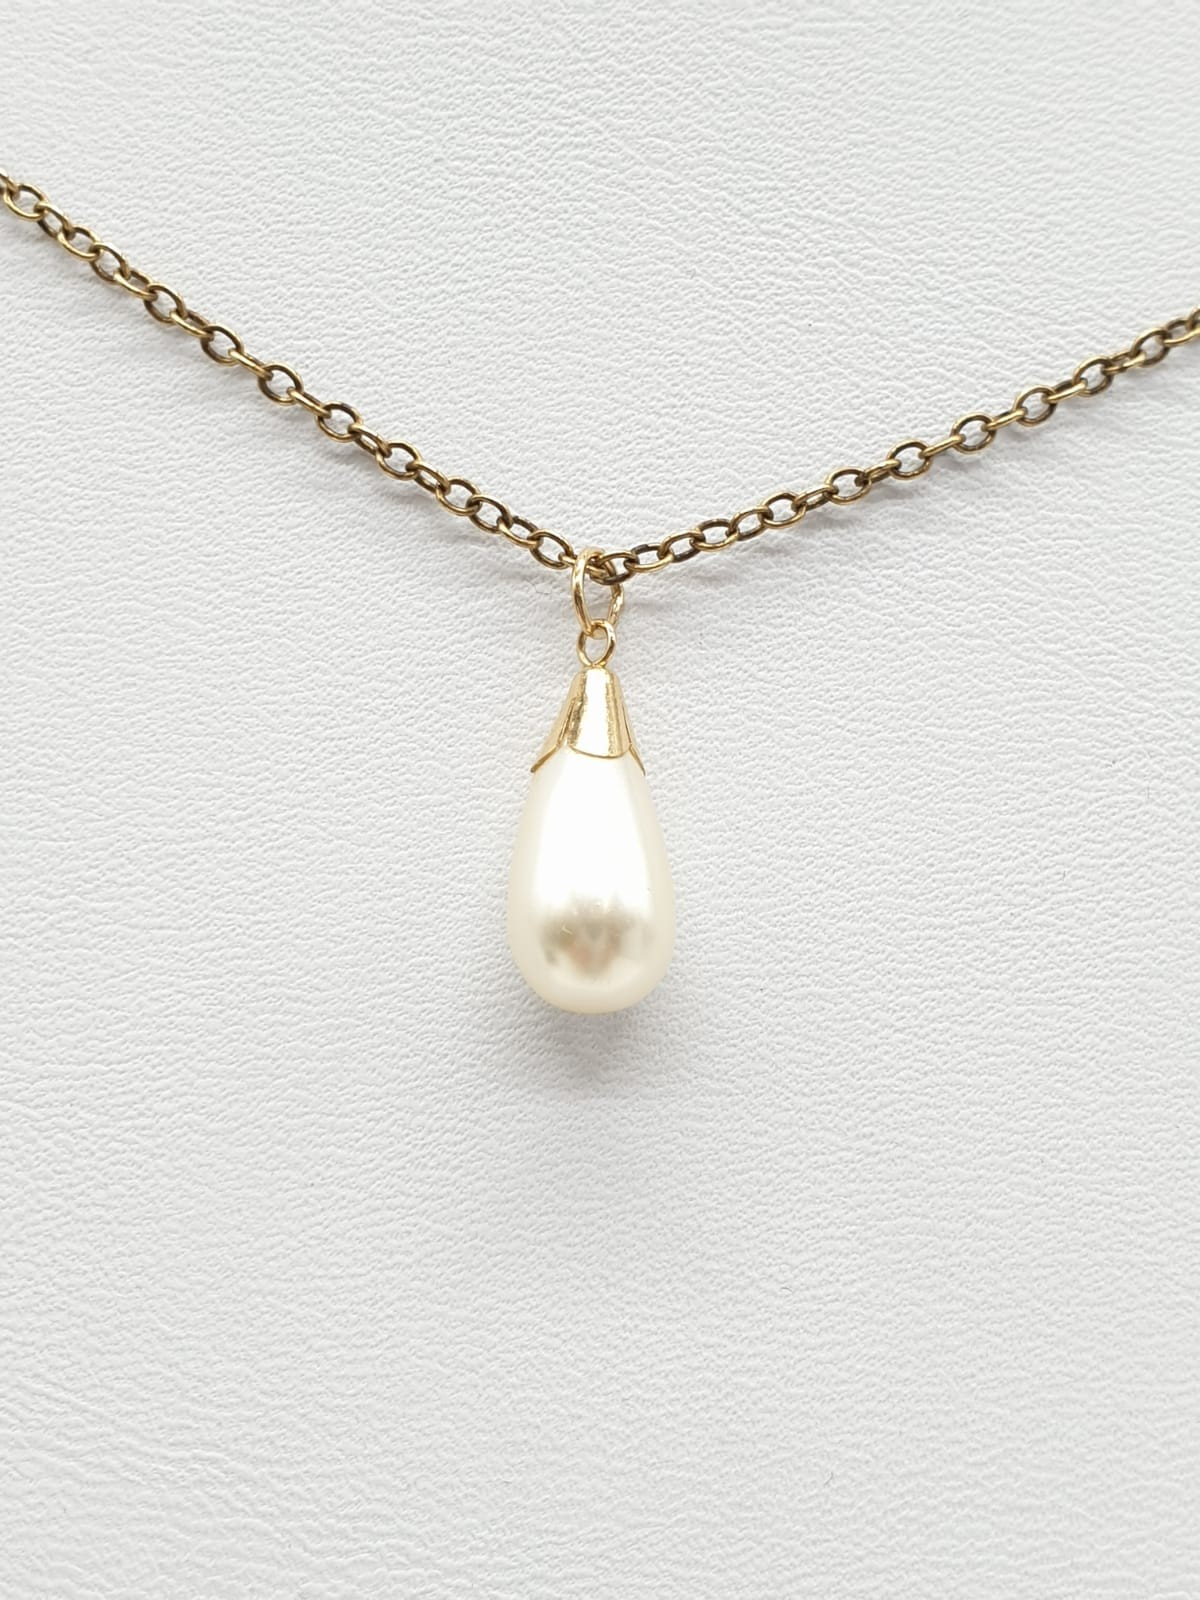 Pearl pendant on a 50cm 9ct gold chain. Weight 3g.